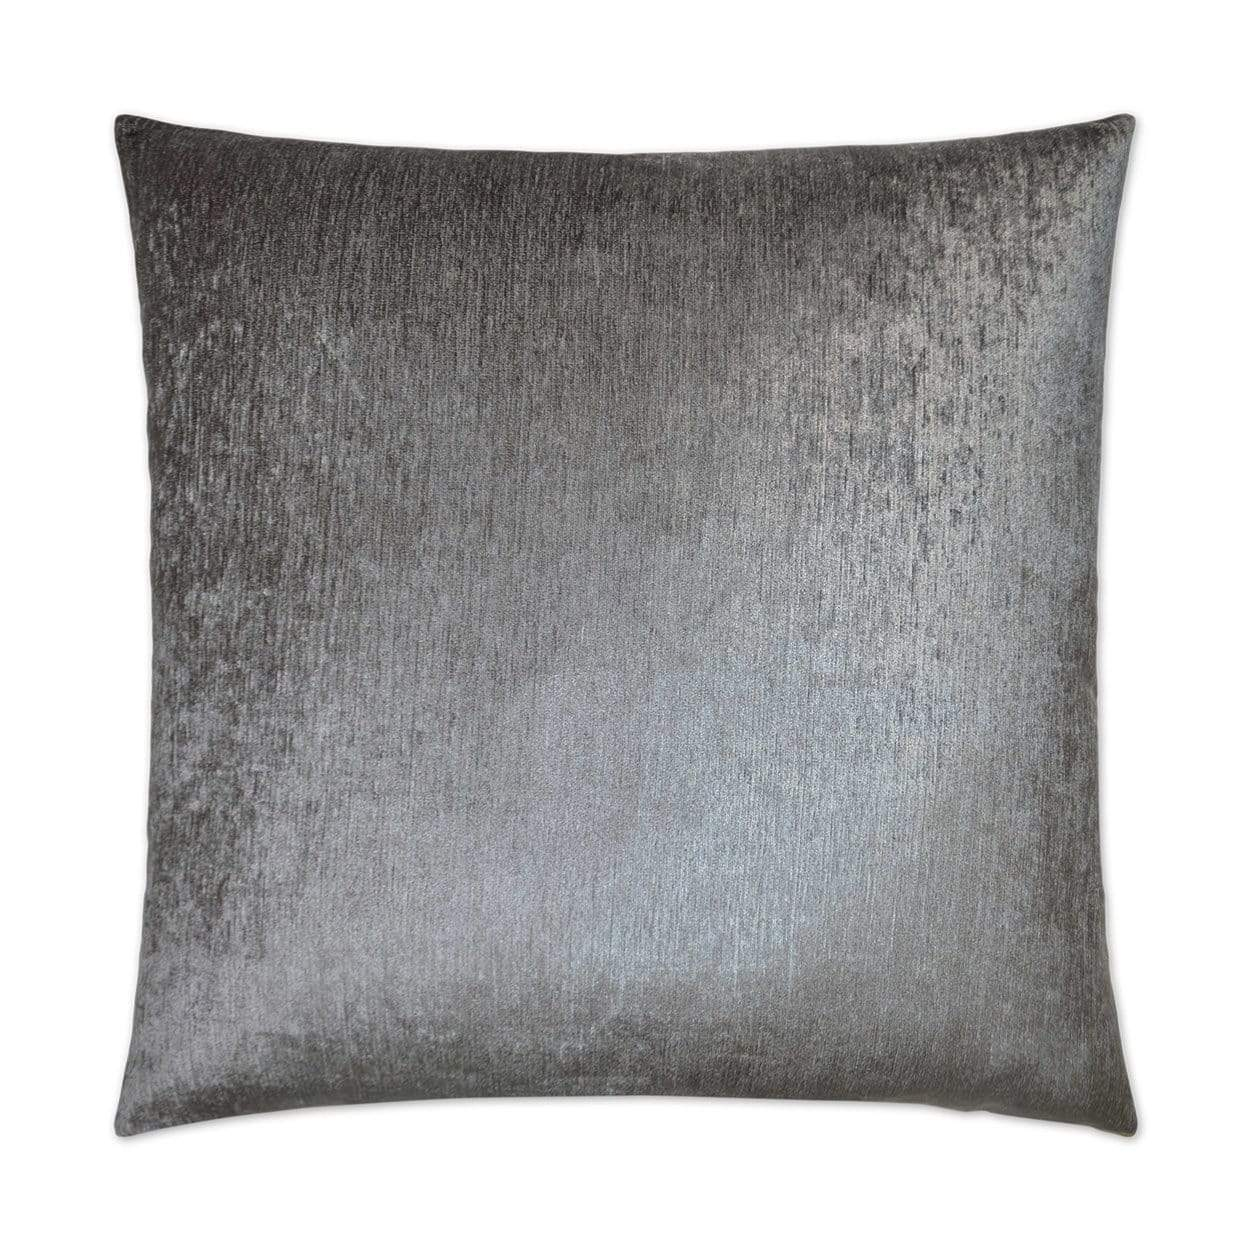 D.V. Kap D.V. Kap Empress Casandra Pillow - Available in 4 Colors Grey 2627-G